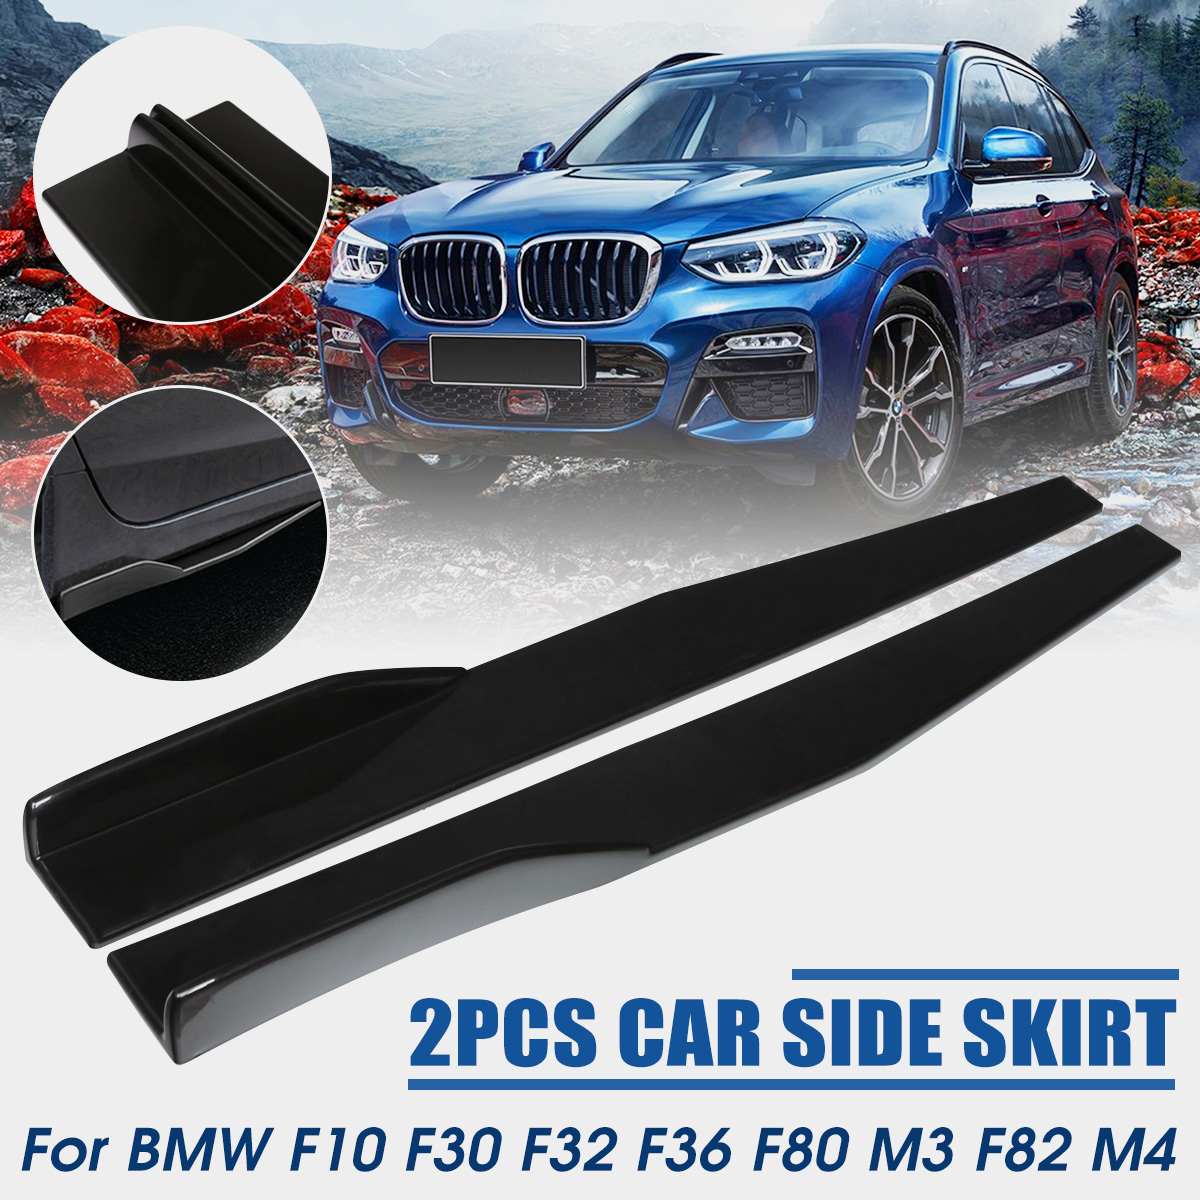 2pcs 74.5 centimetri Universal Car Side Gonna Rocker Splitter Winglet Ala Laterale Del Respingente Lip Bumper Nero/Rosso/ in Fibra di carbonio Look Minigonne Laterali